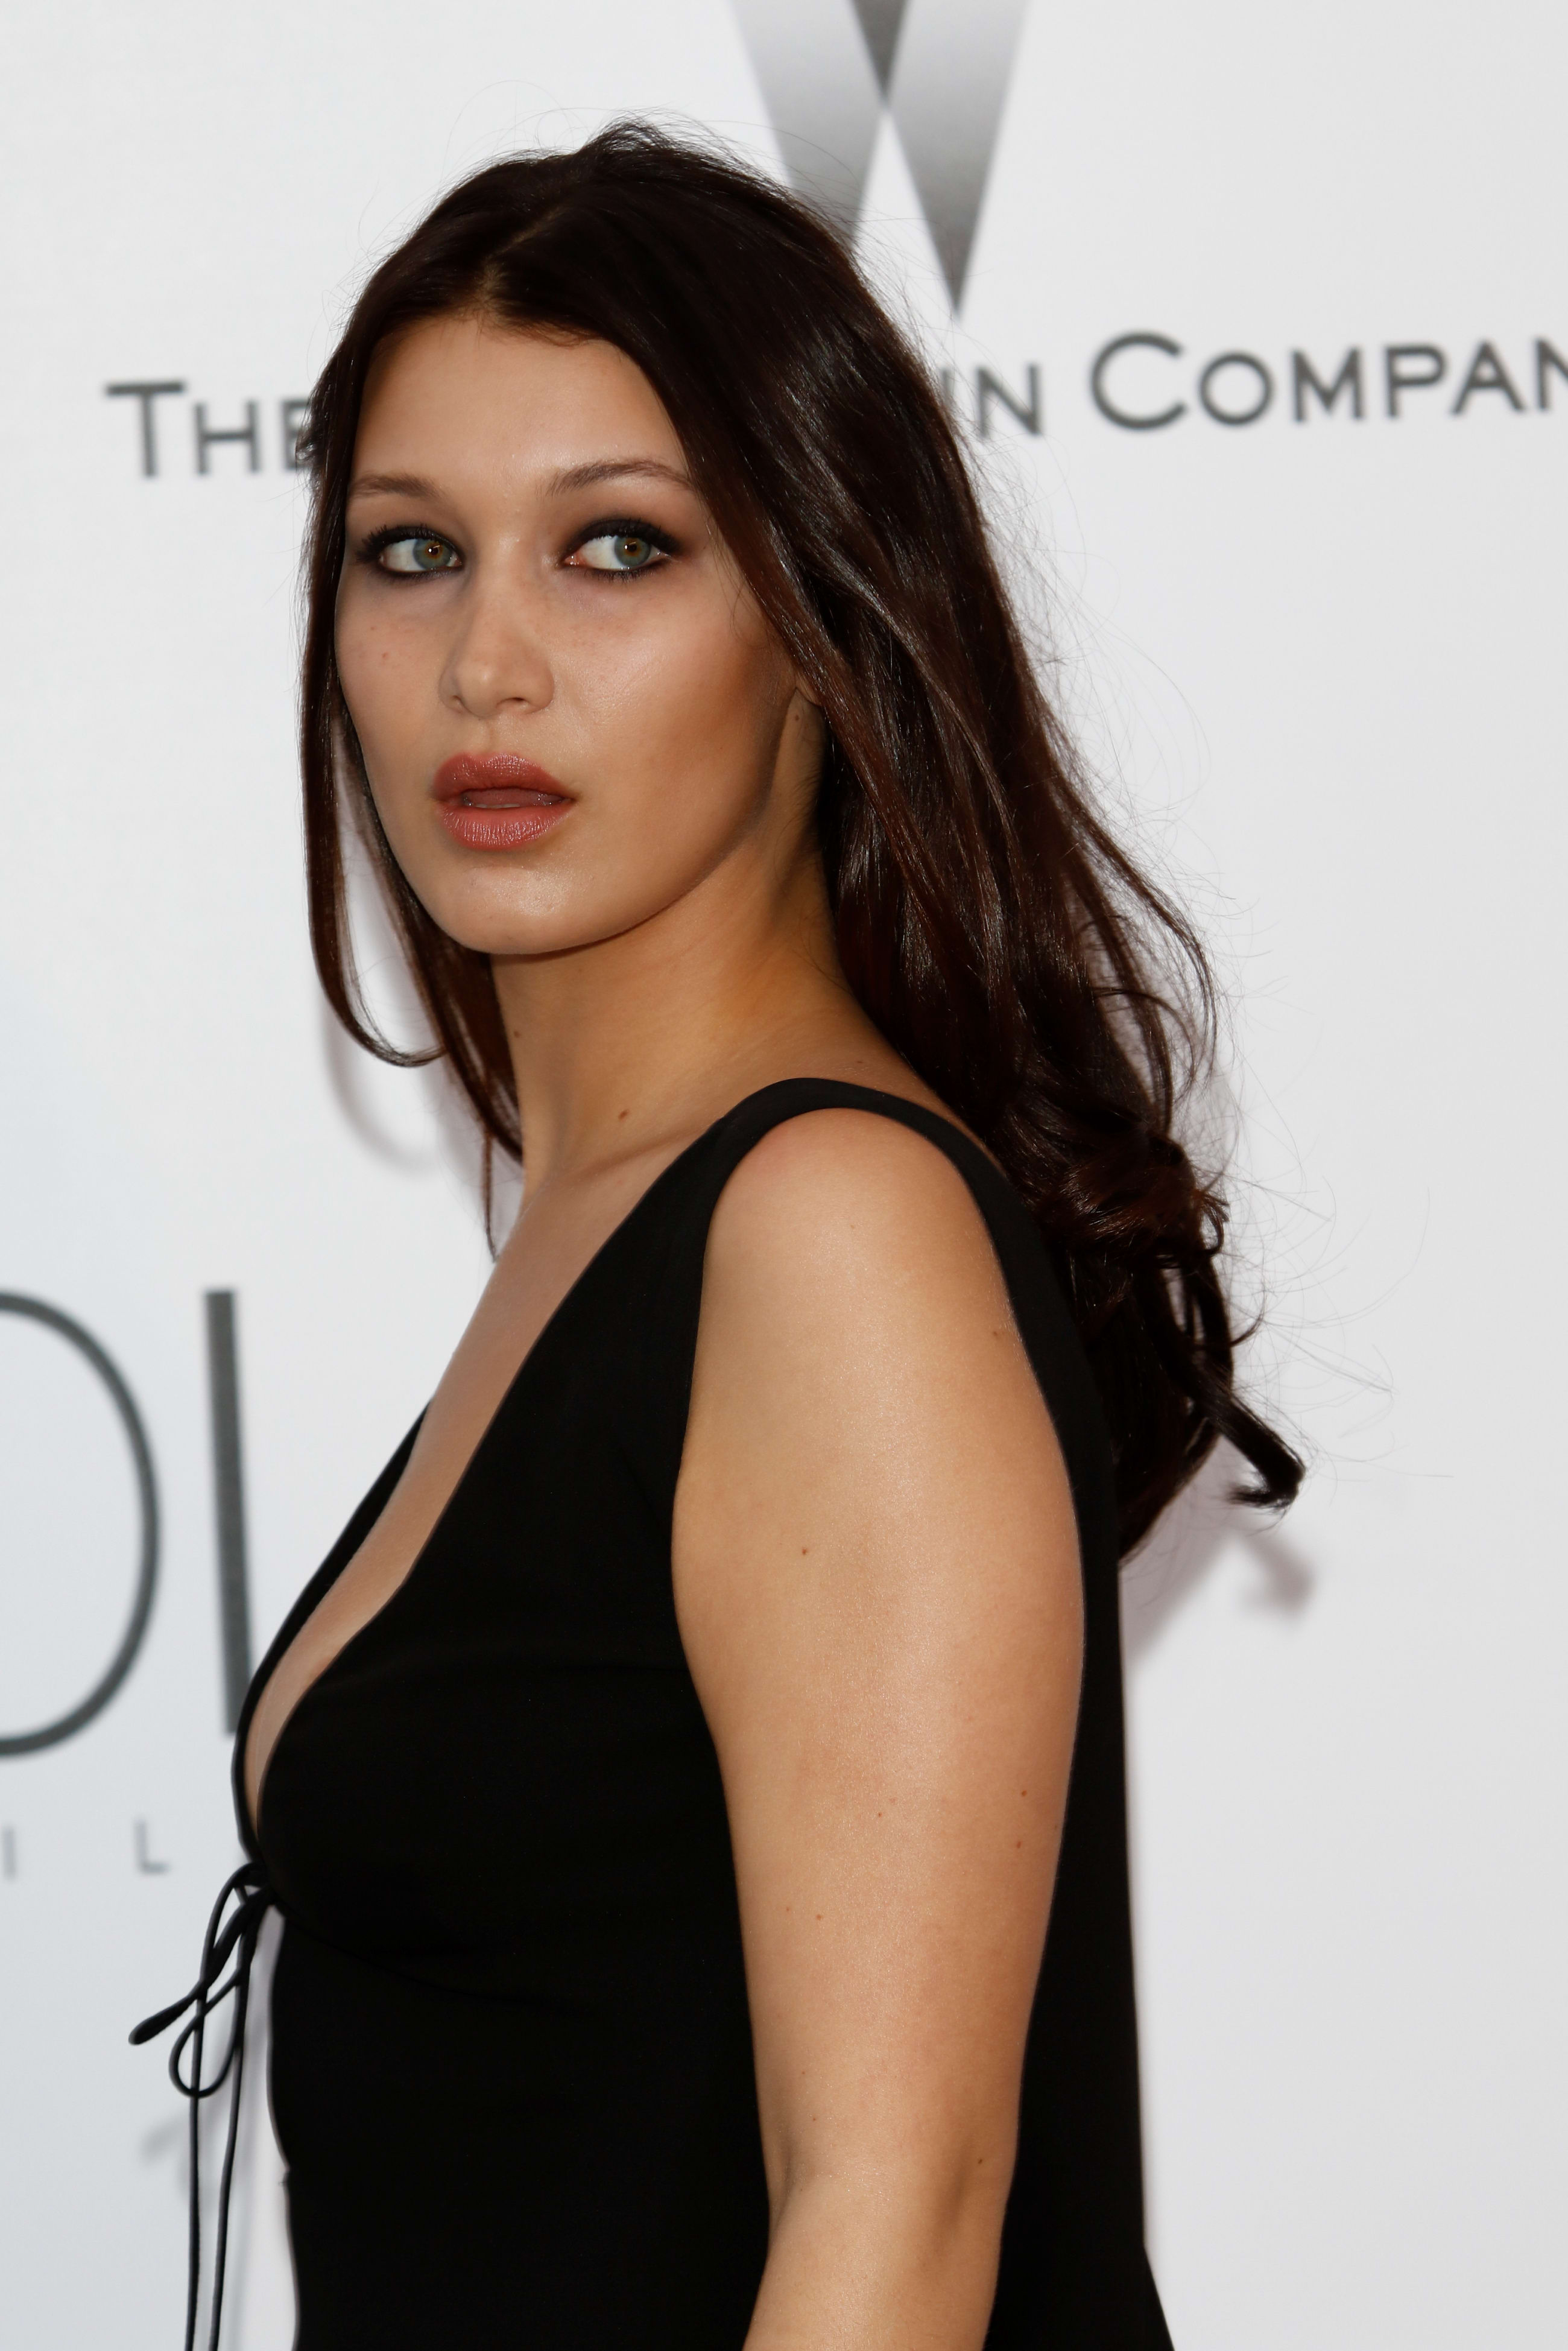 Bella Hadid is Wasting Away to Nothing - The Hollywood Gossip 255af50621